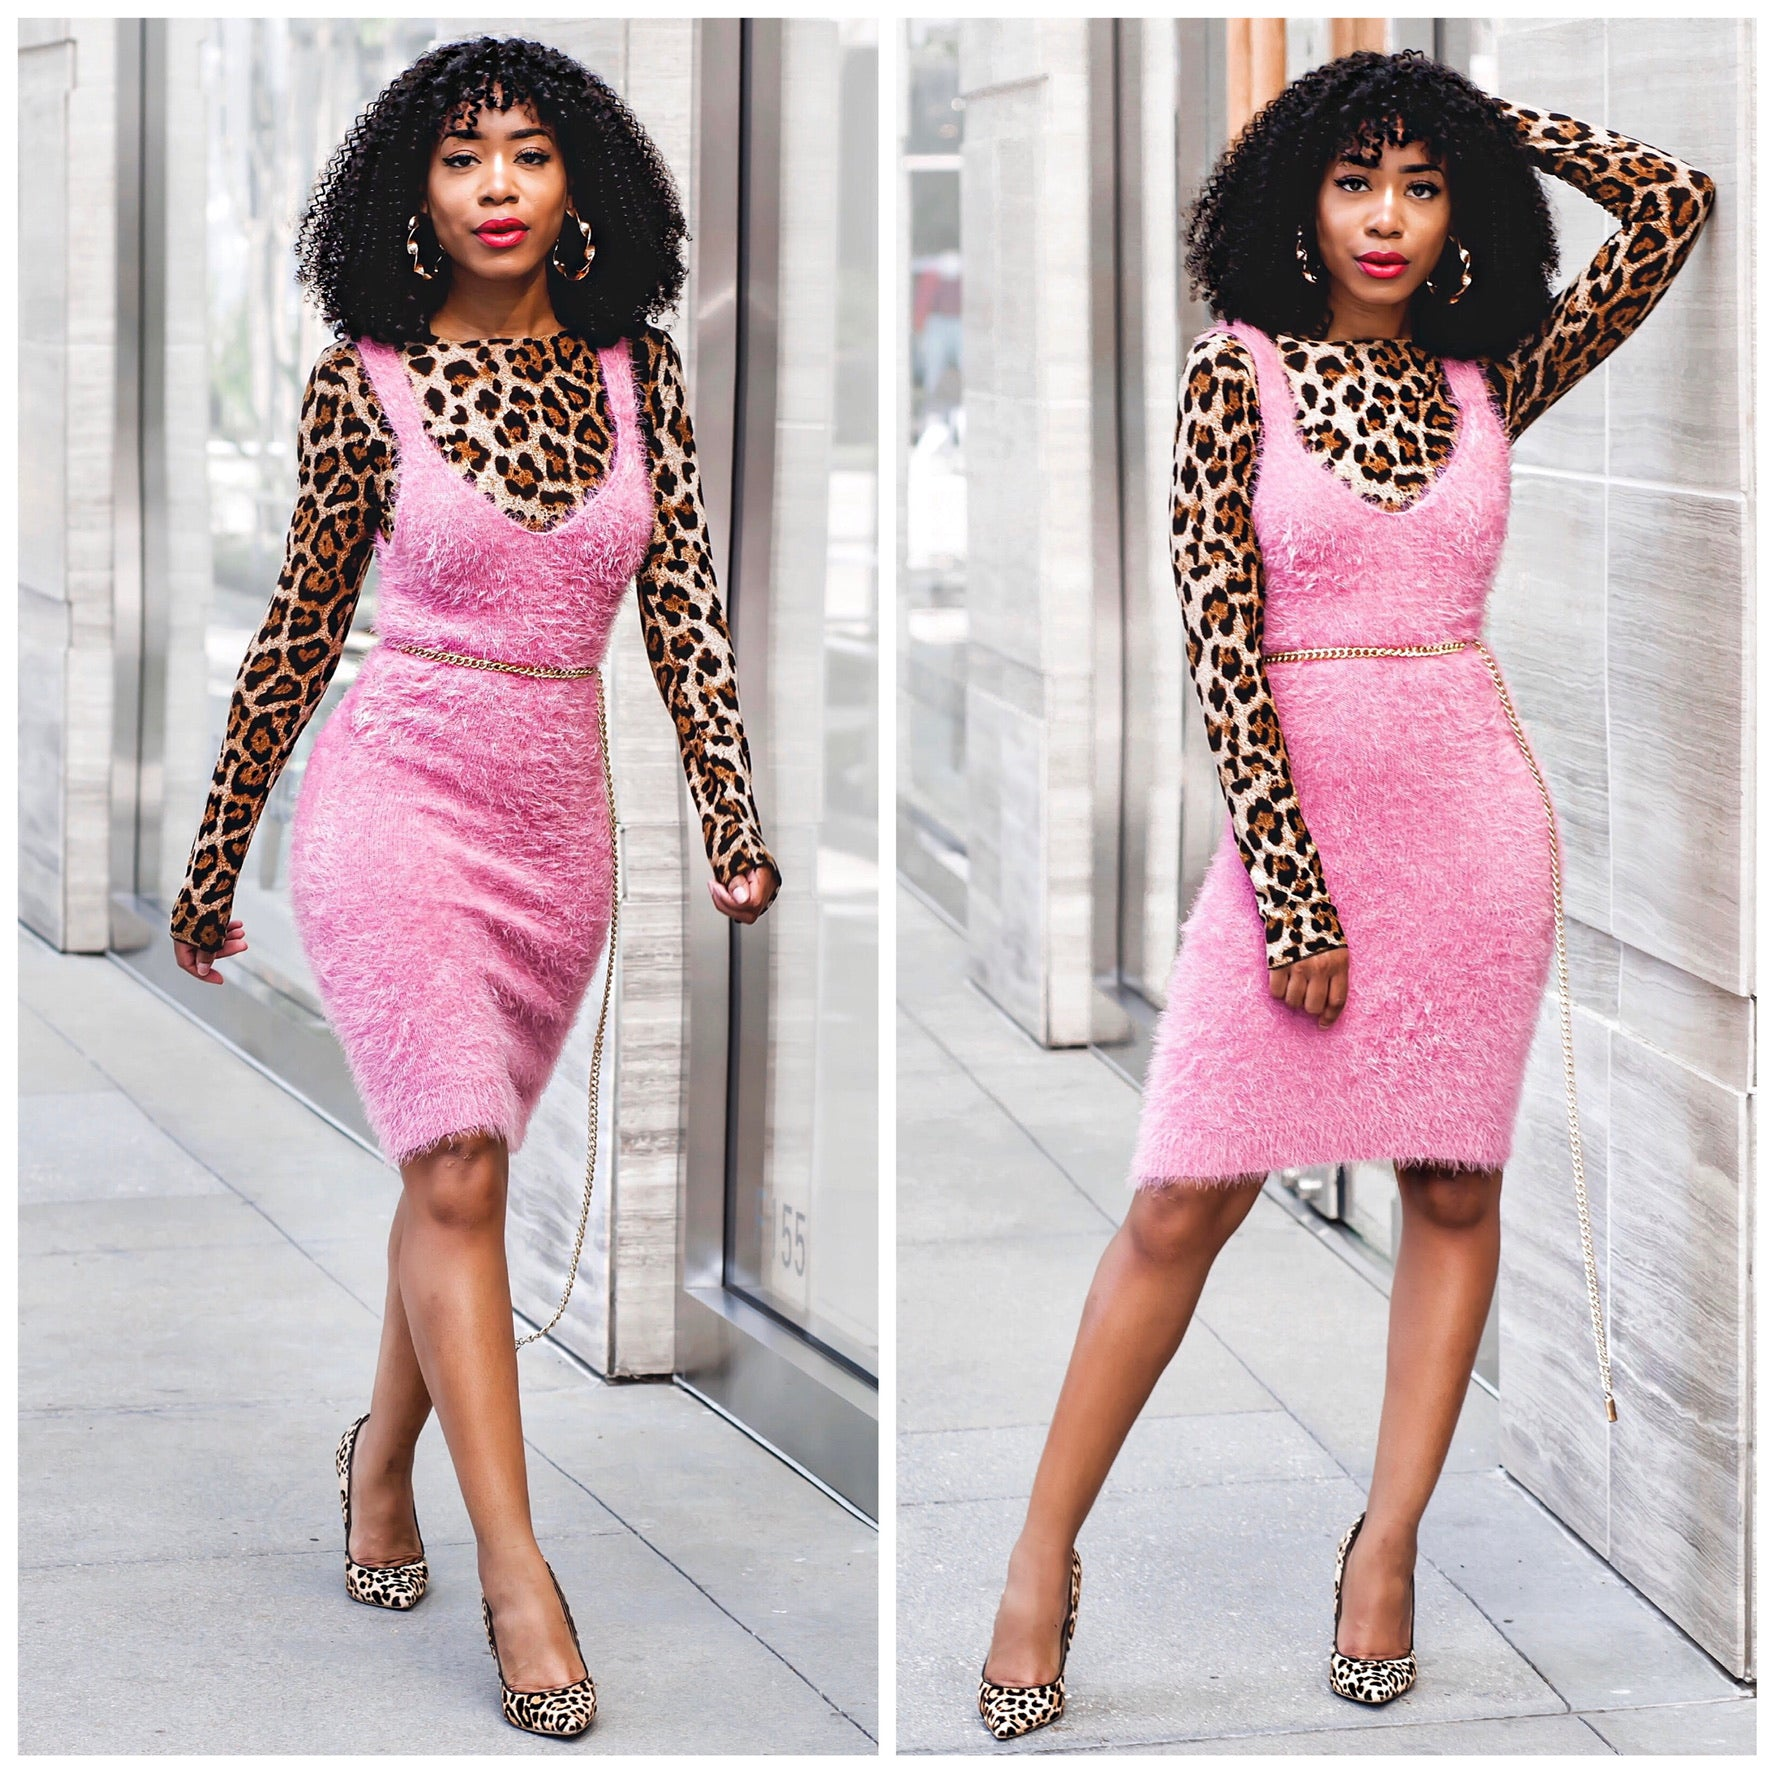 """As If"" in this Pink Fur Dress"